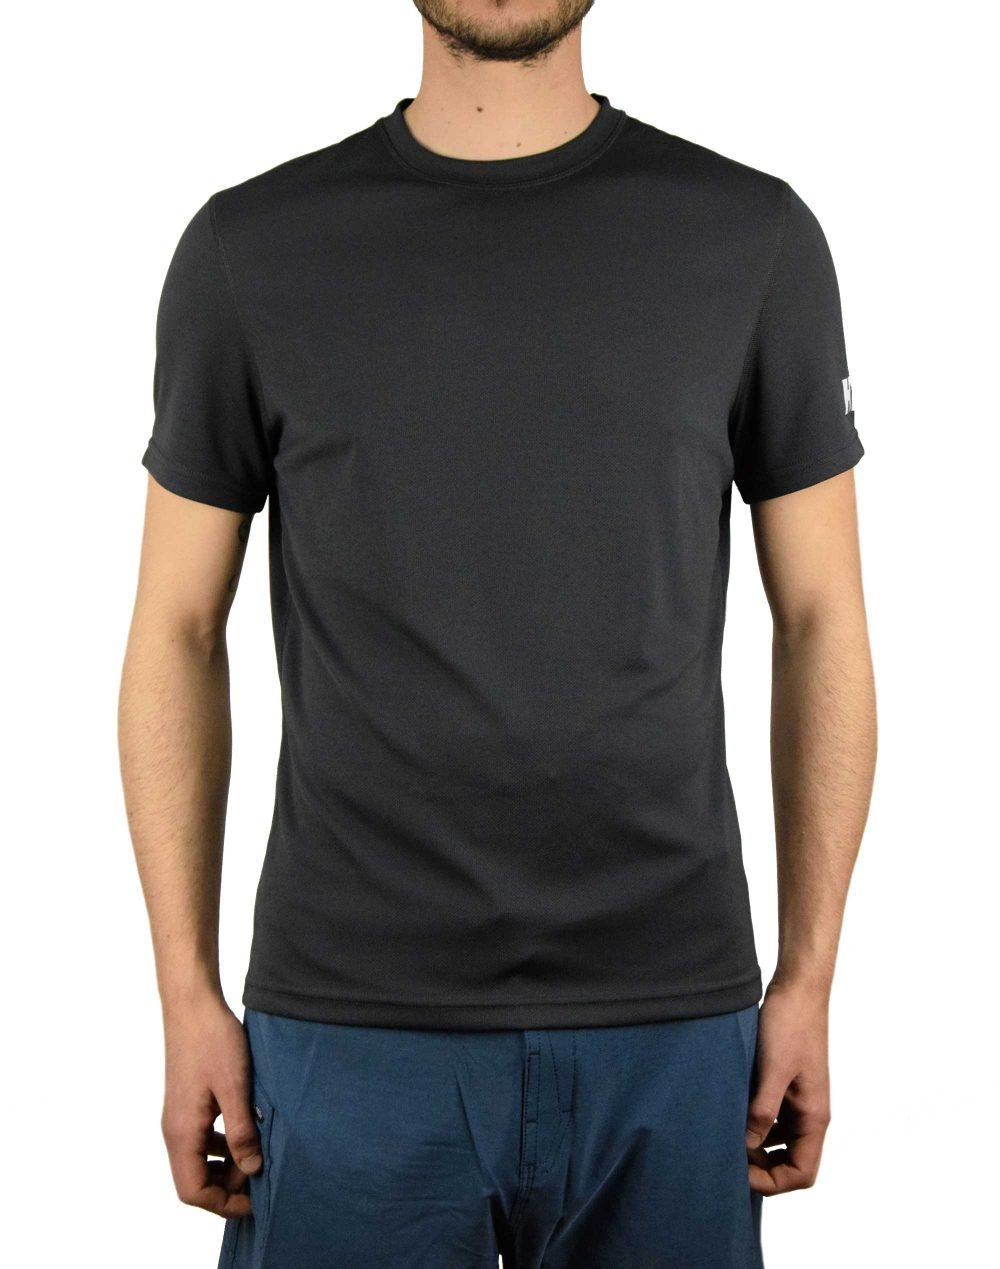 Helly Hansen Tech T-Shirt (48363-980) Eboby